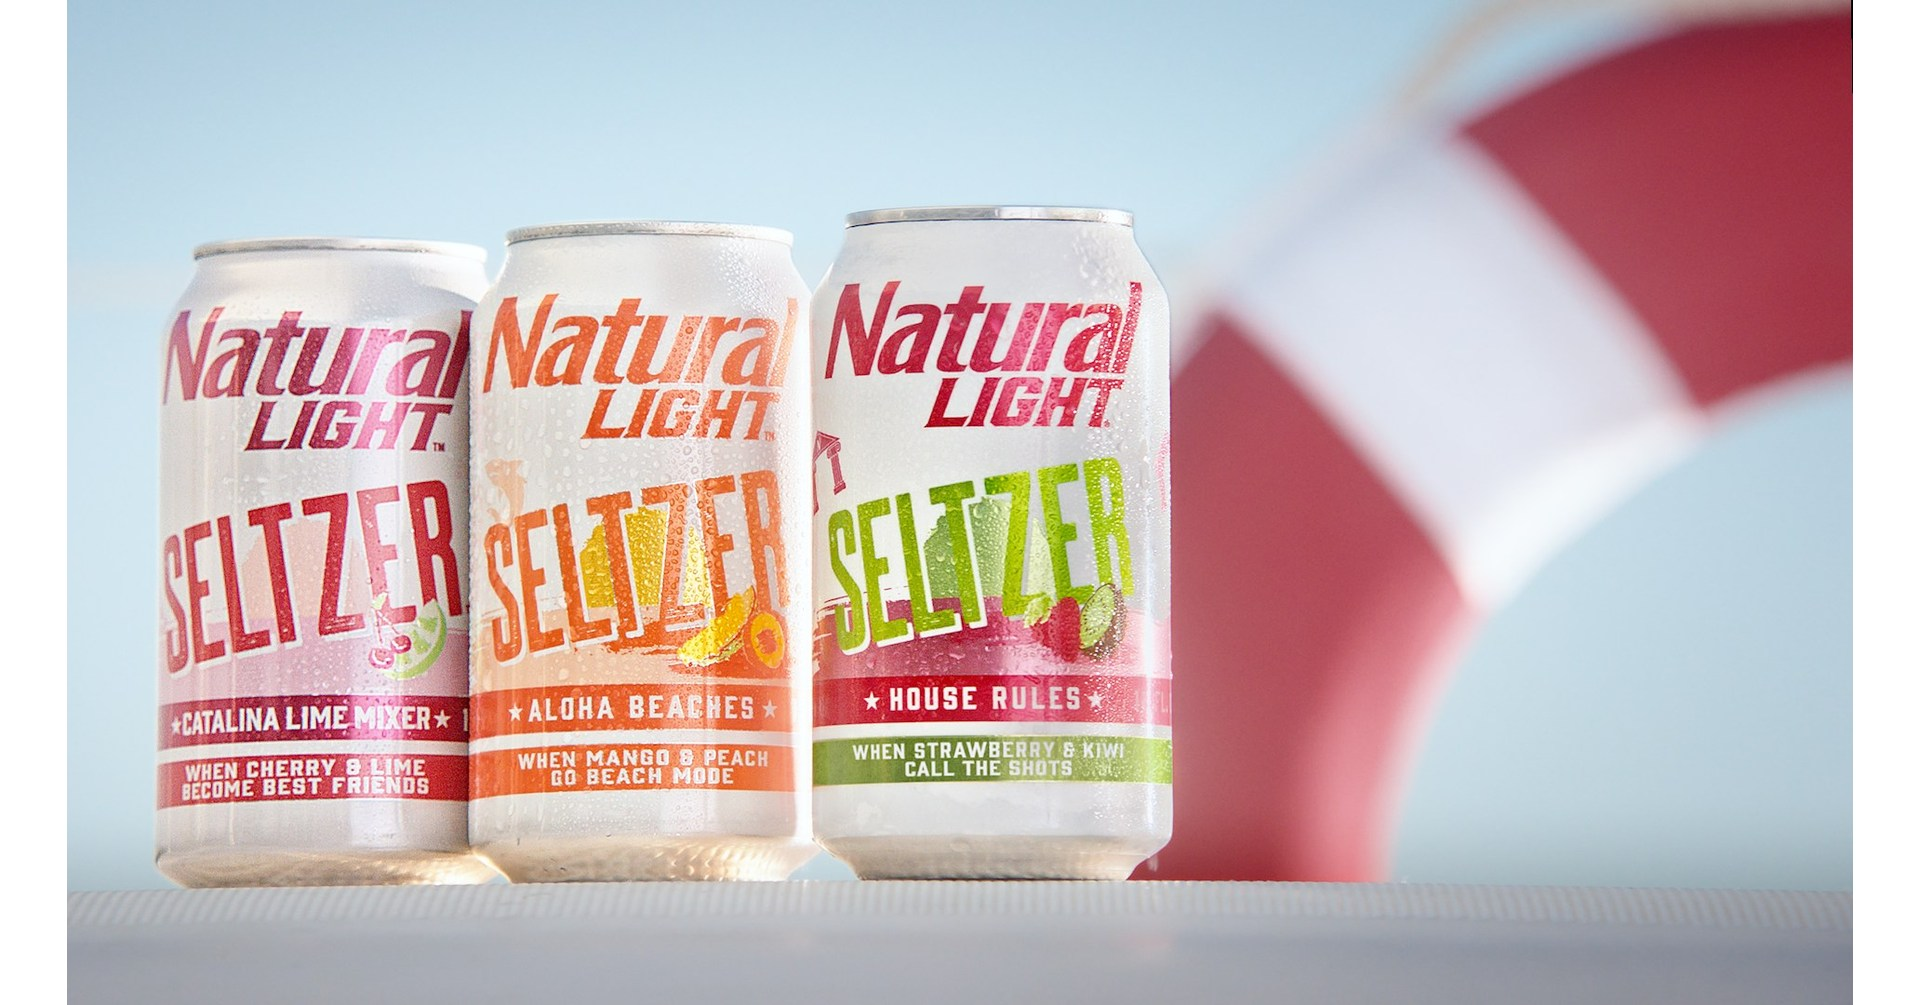 Natural Light Seltzer Is Inviting You To Their House Party For The Big Game photo